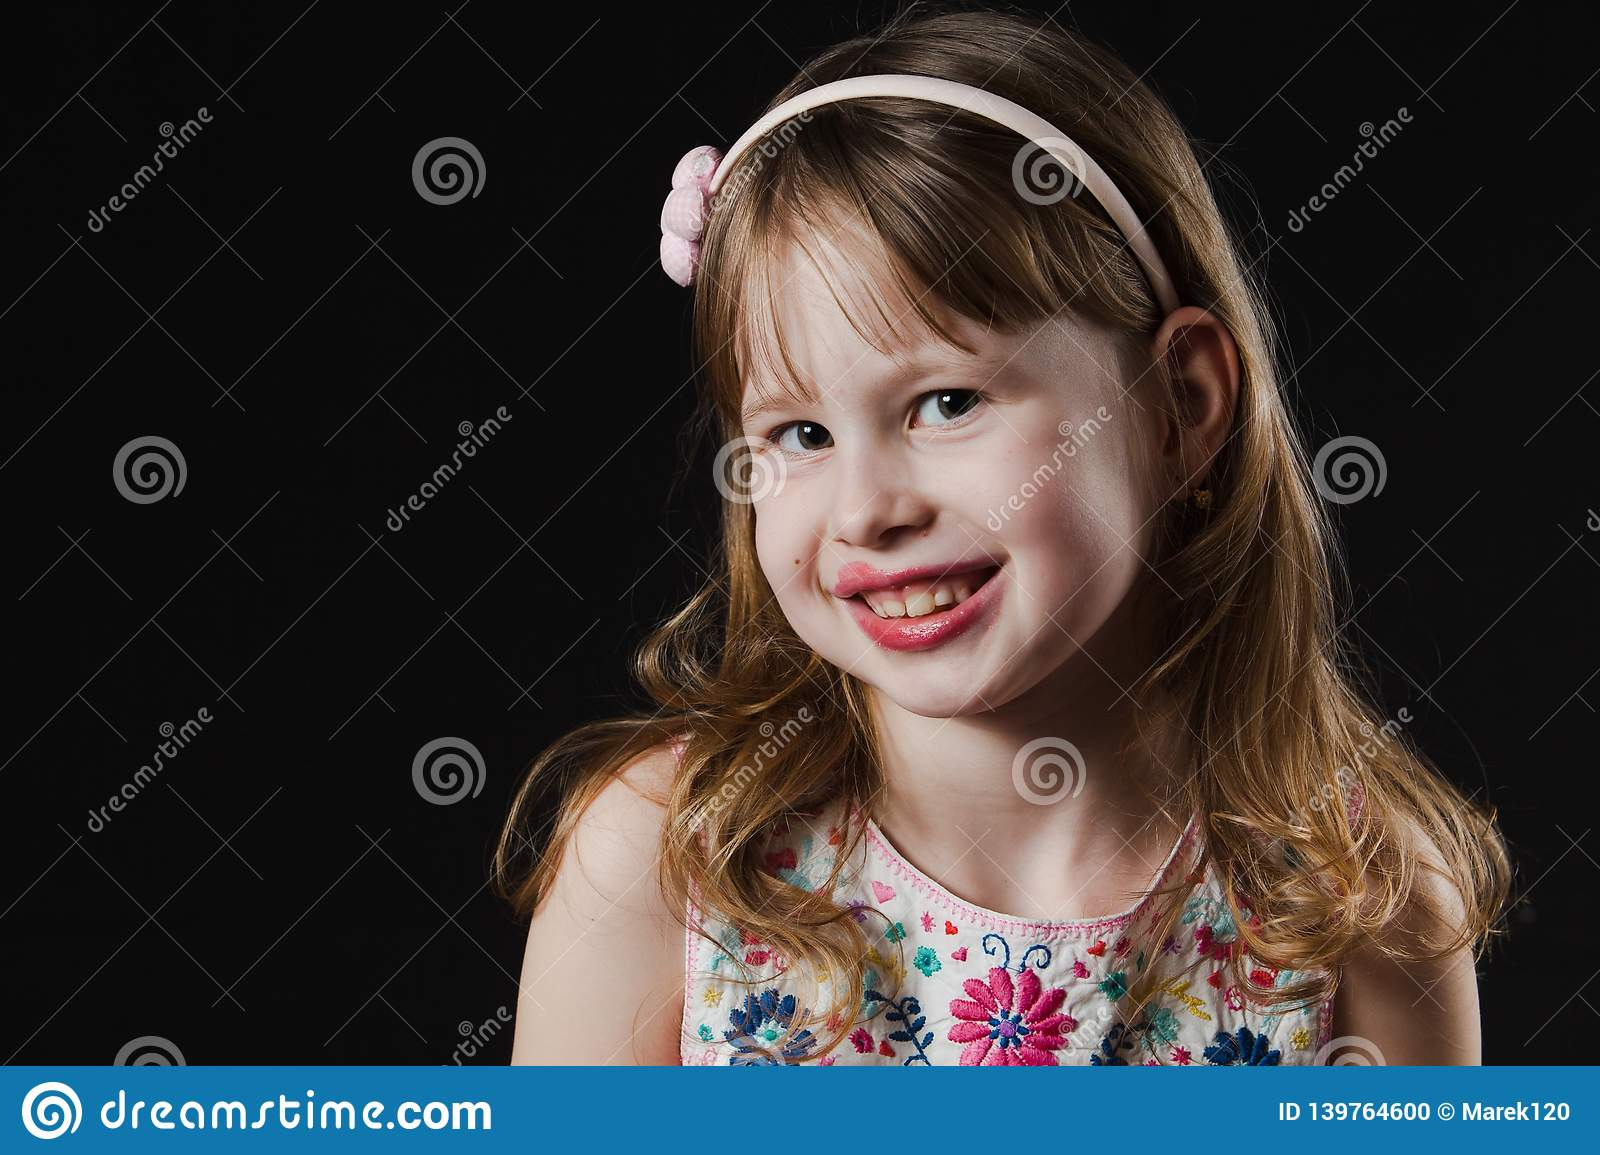 Smiling girl with blurred lips